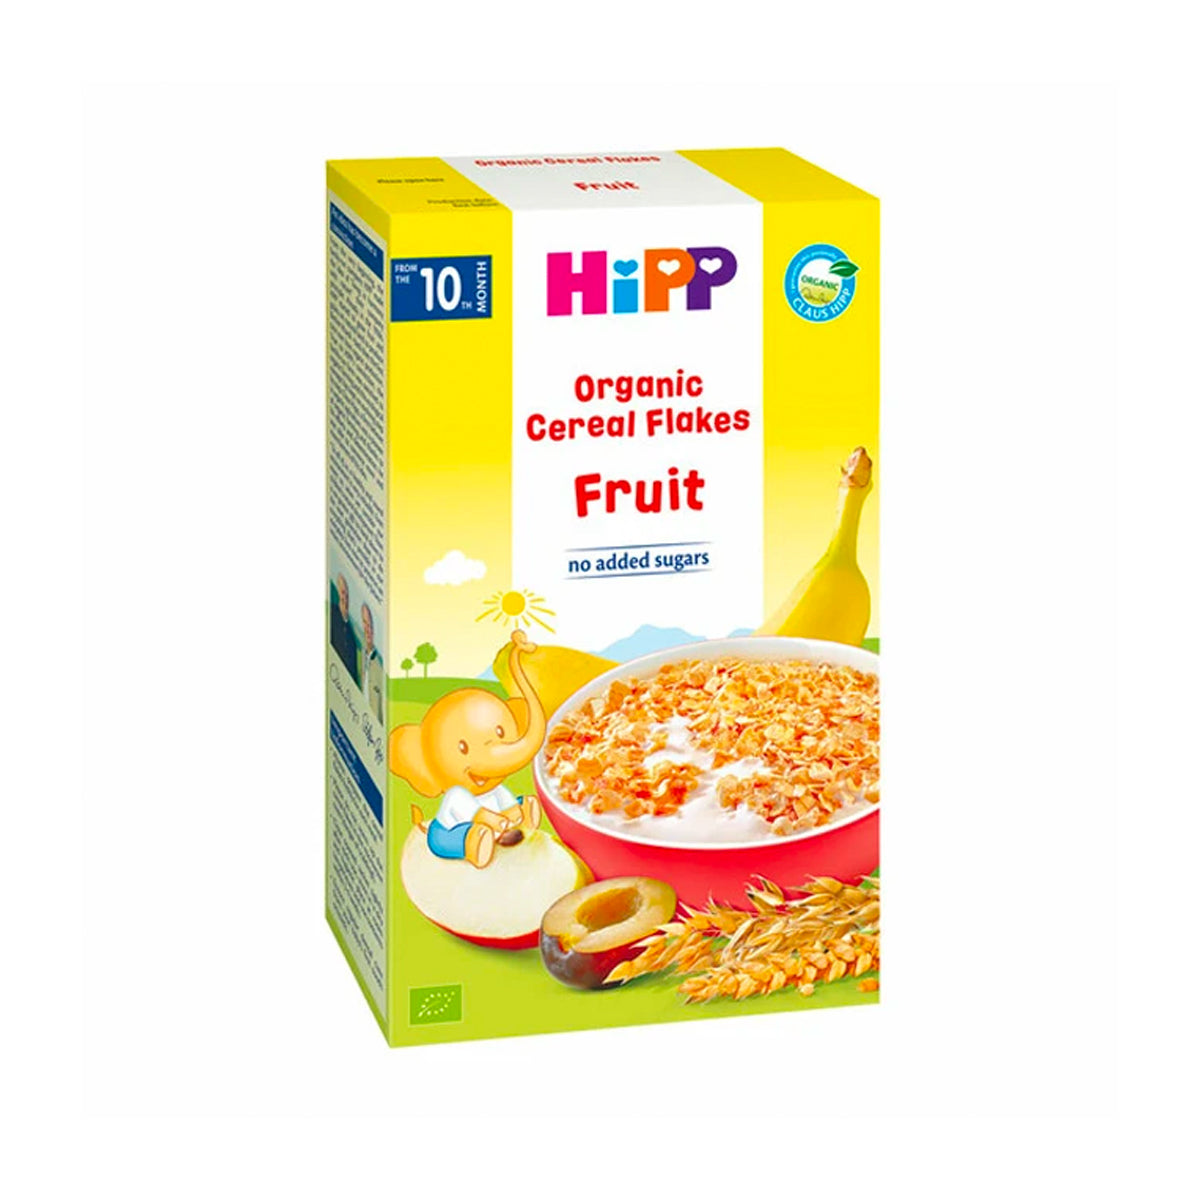 HiPP Organic Cereal Flakes Fruit (200g)